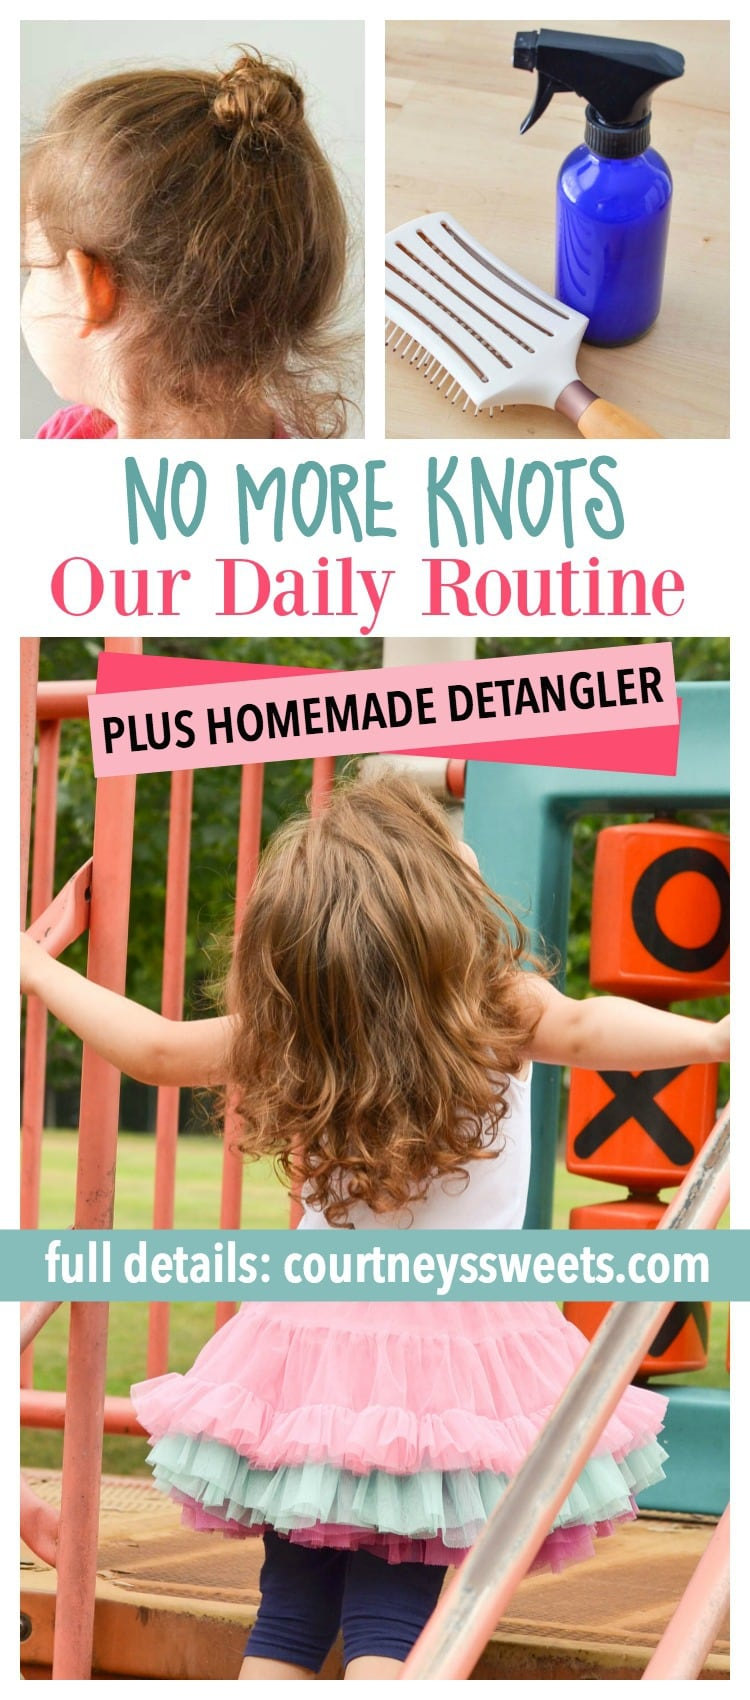 No More Knots Plus Homemade Detangler / Our Daily Routine to Keep Knots Away!